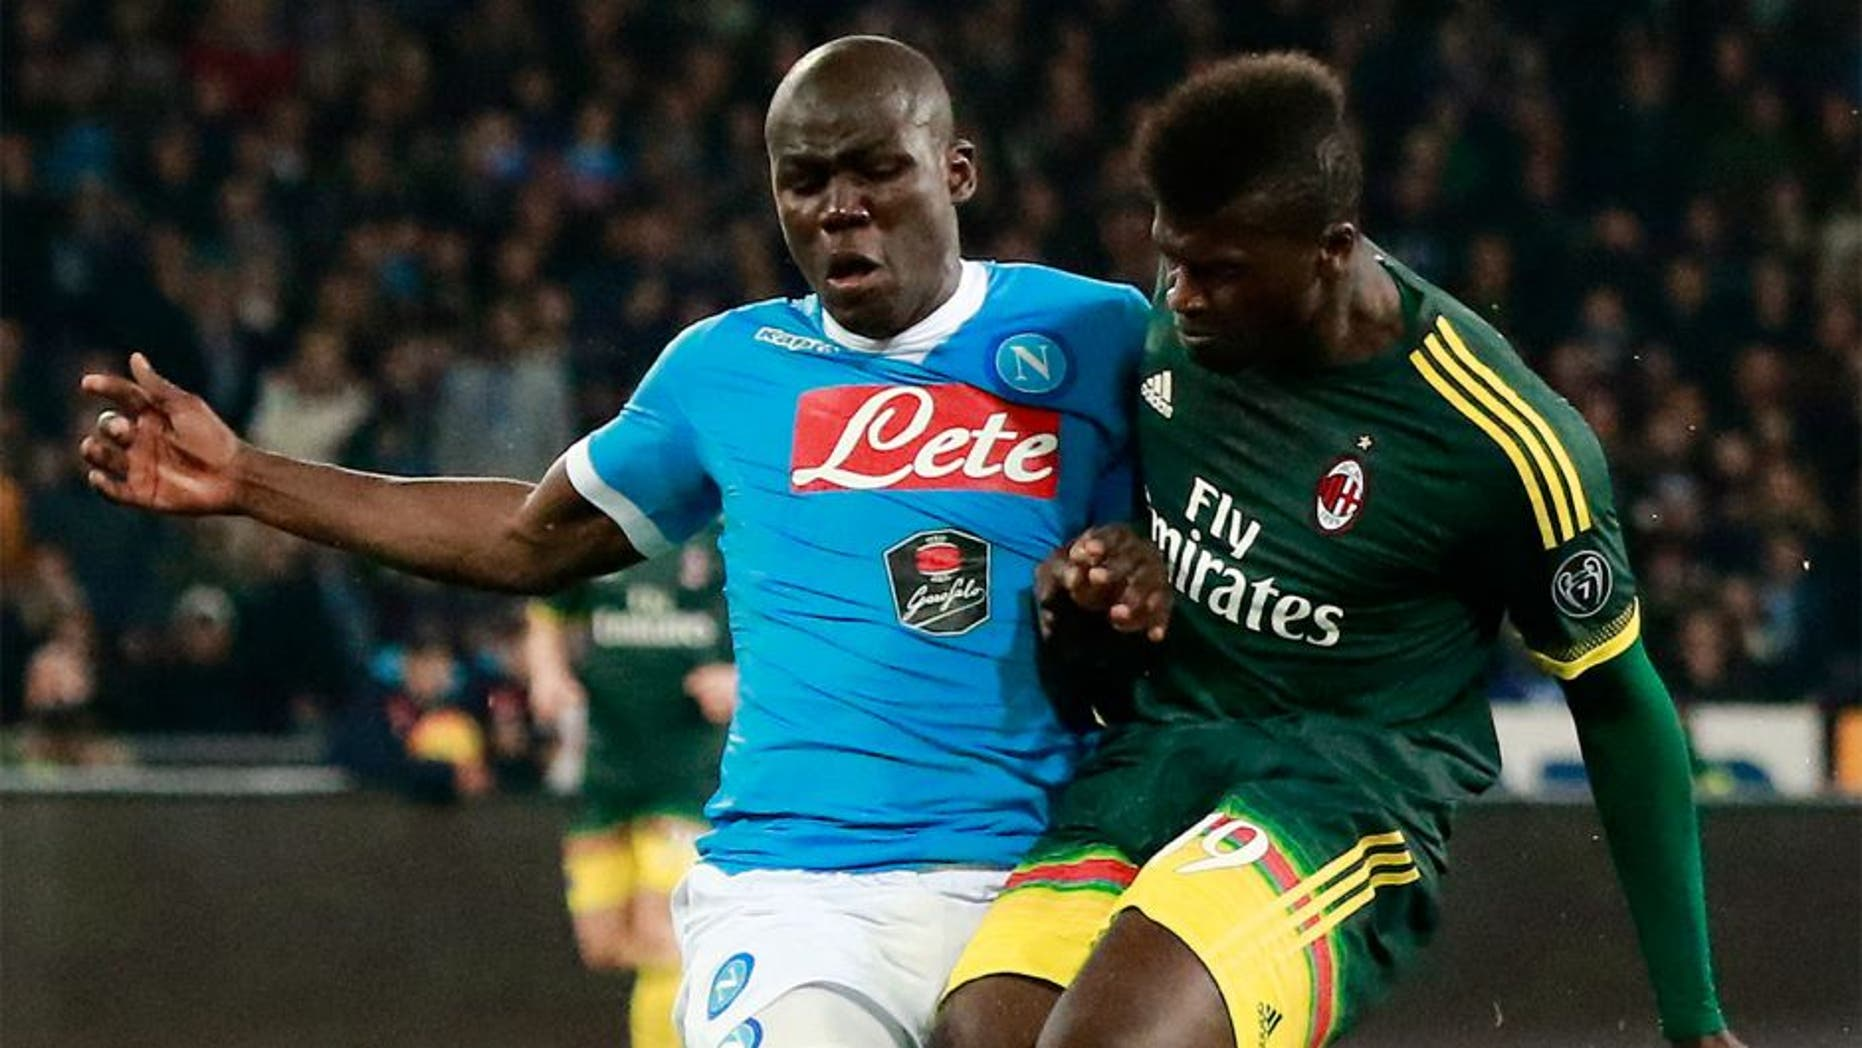 AC Milan's French forward M'Baye Niang (R) fights for the ball with Napoli's French defender Kalidou Koulibaly during the Italian Serie A football match SSC Napoli vs AC Milan on February 22, 2016 at the San Paolo stadium in Naples. / AFP / CARLO HERMANN (Photo credit should read CARLO HERMANN/AFP/Getty Images)